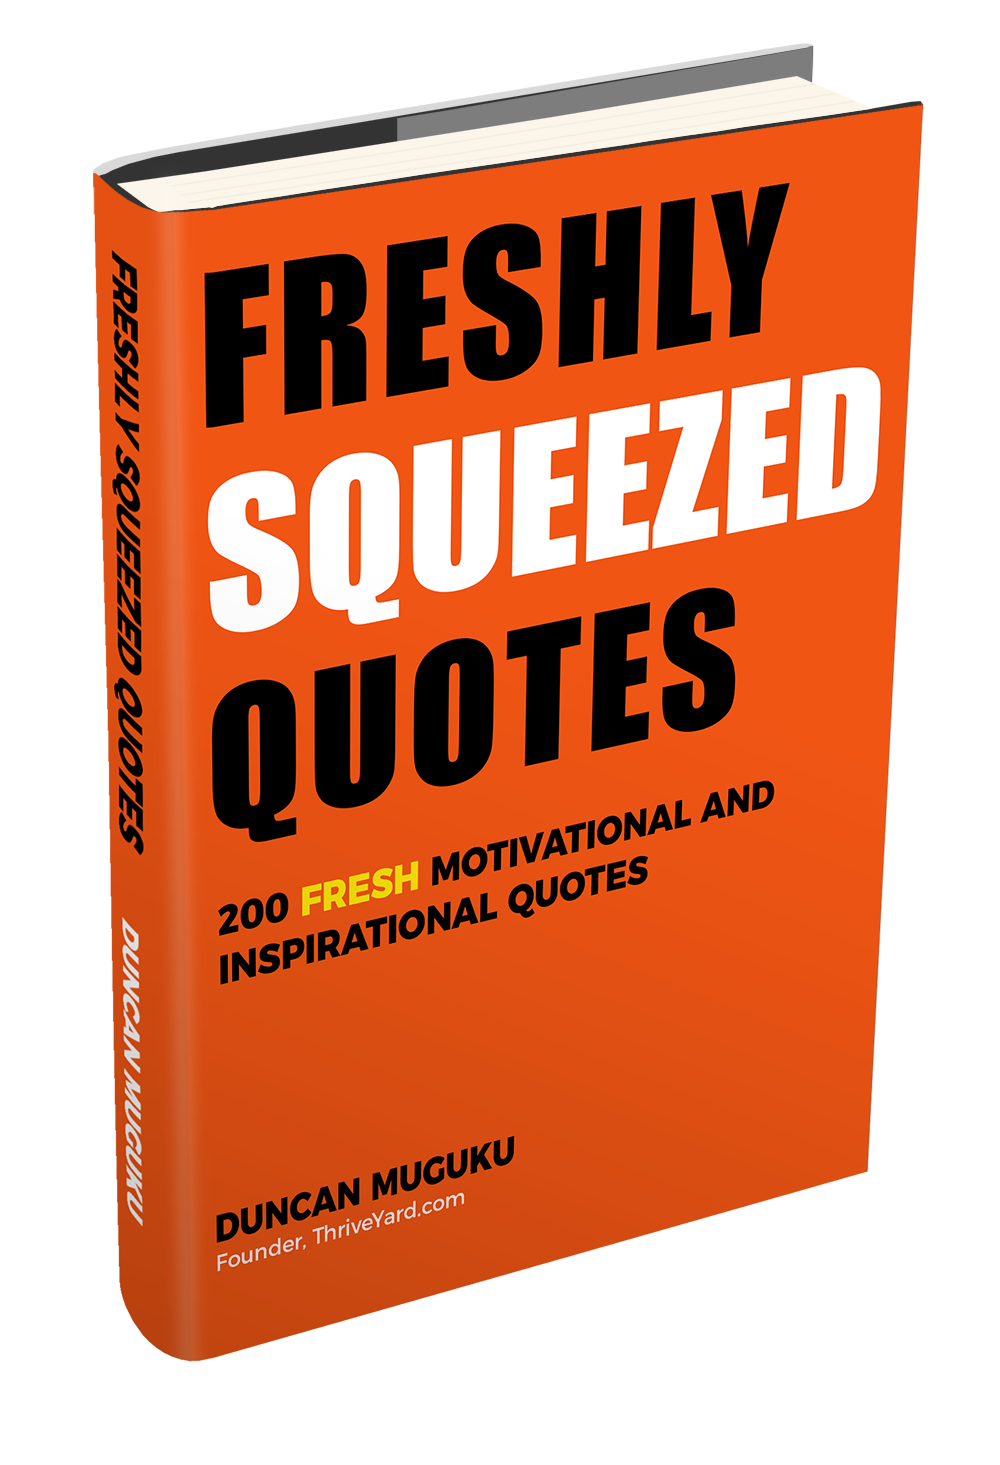 Best selling motivational books pdf free download